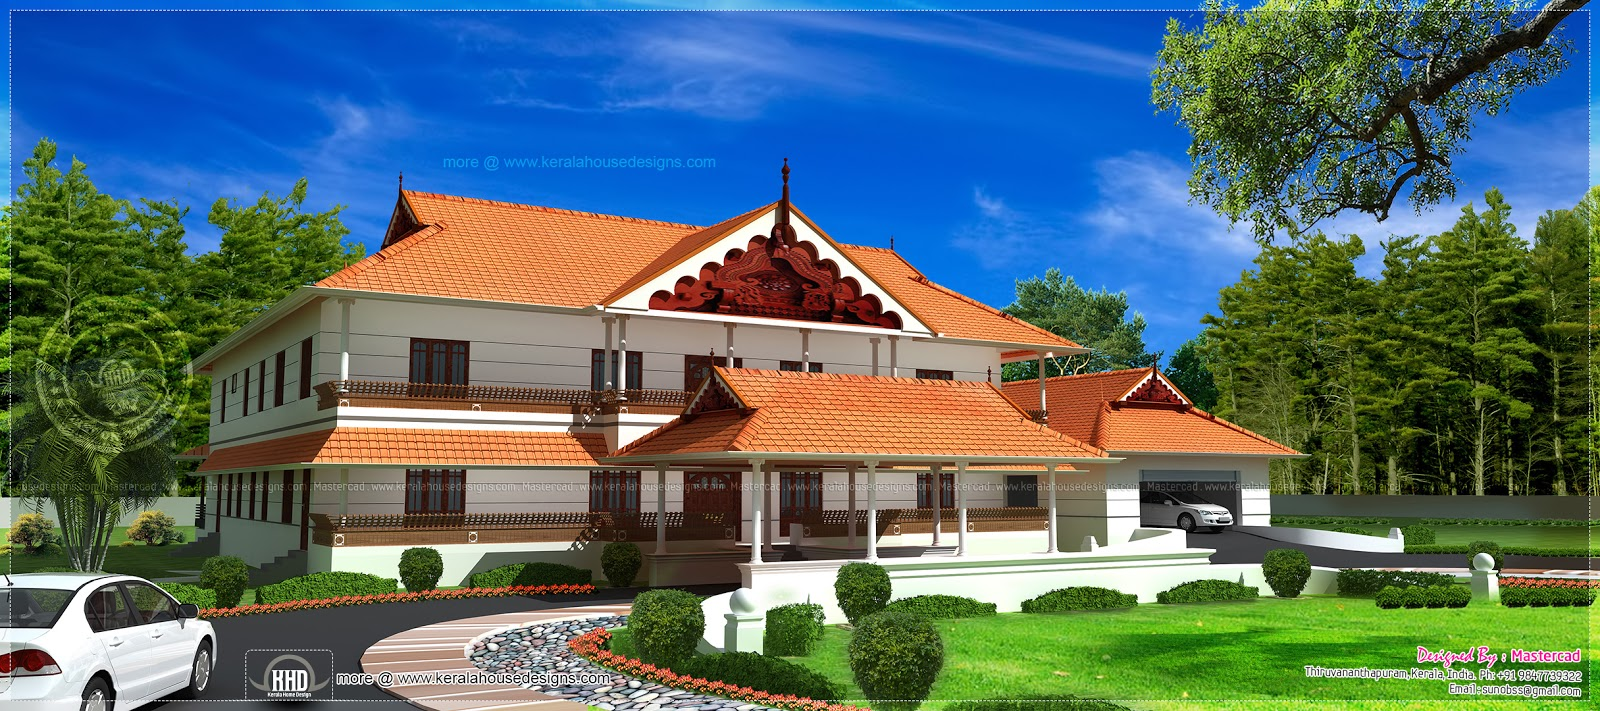 Super Kerala Style Super Luxury House Kerala Home Design And Floor Plans Largest Home Design Picture Inspirations Pitcheantrous